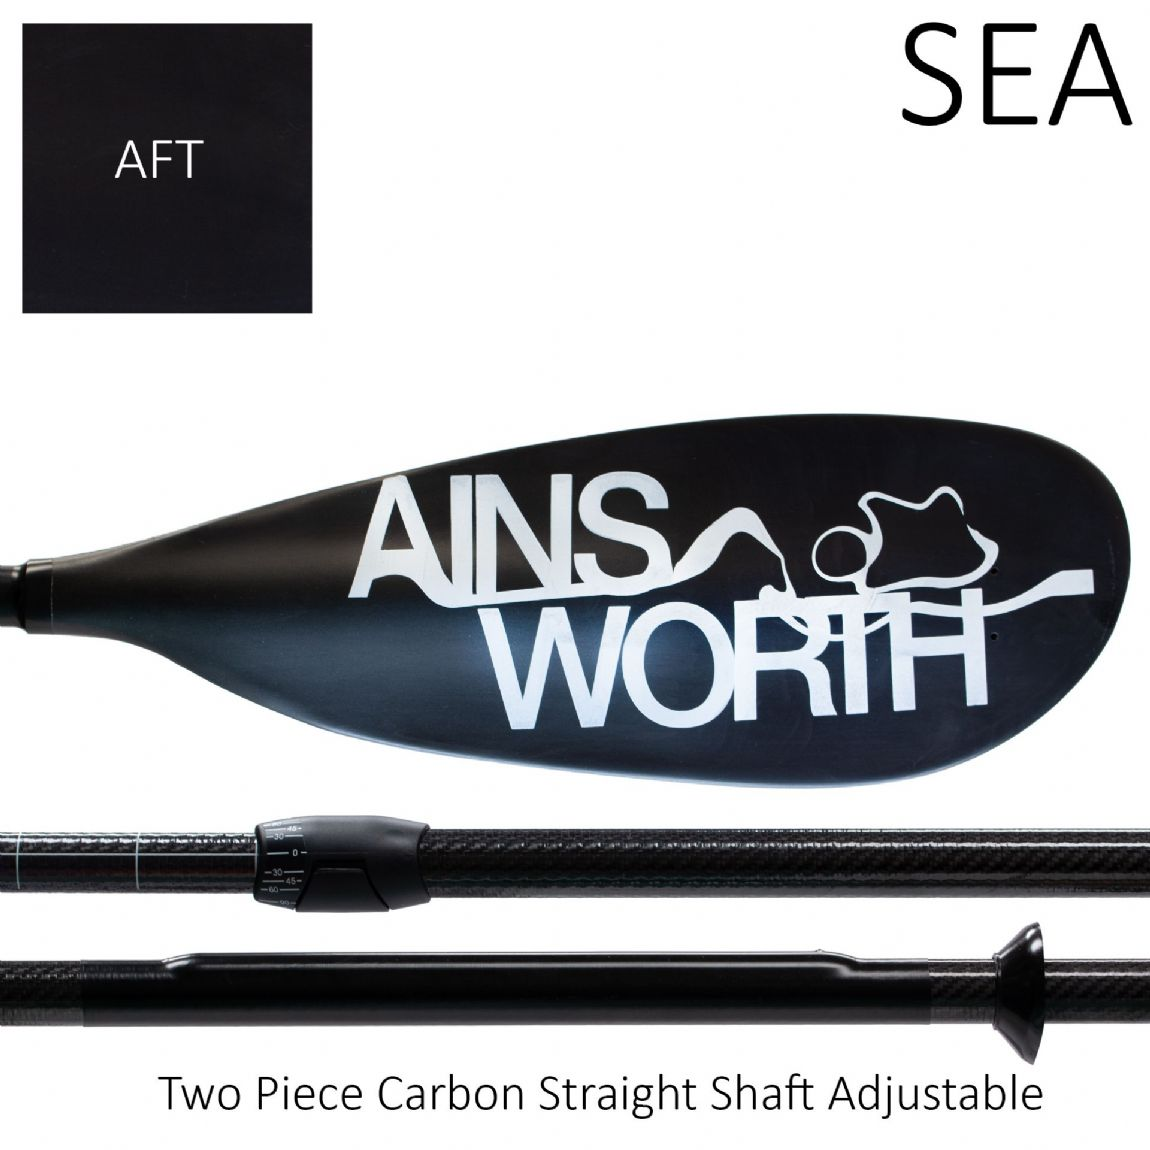 SEA (AFT) Two Piece Carbon Straight Shaft Adjustable